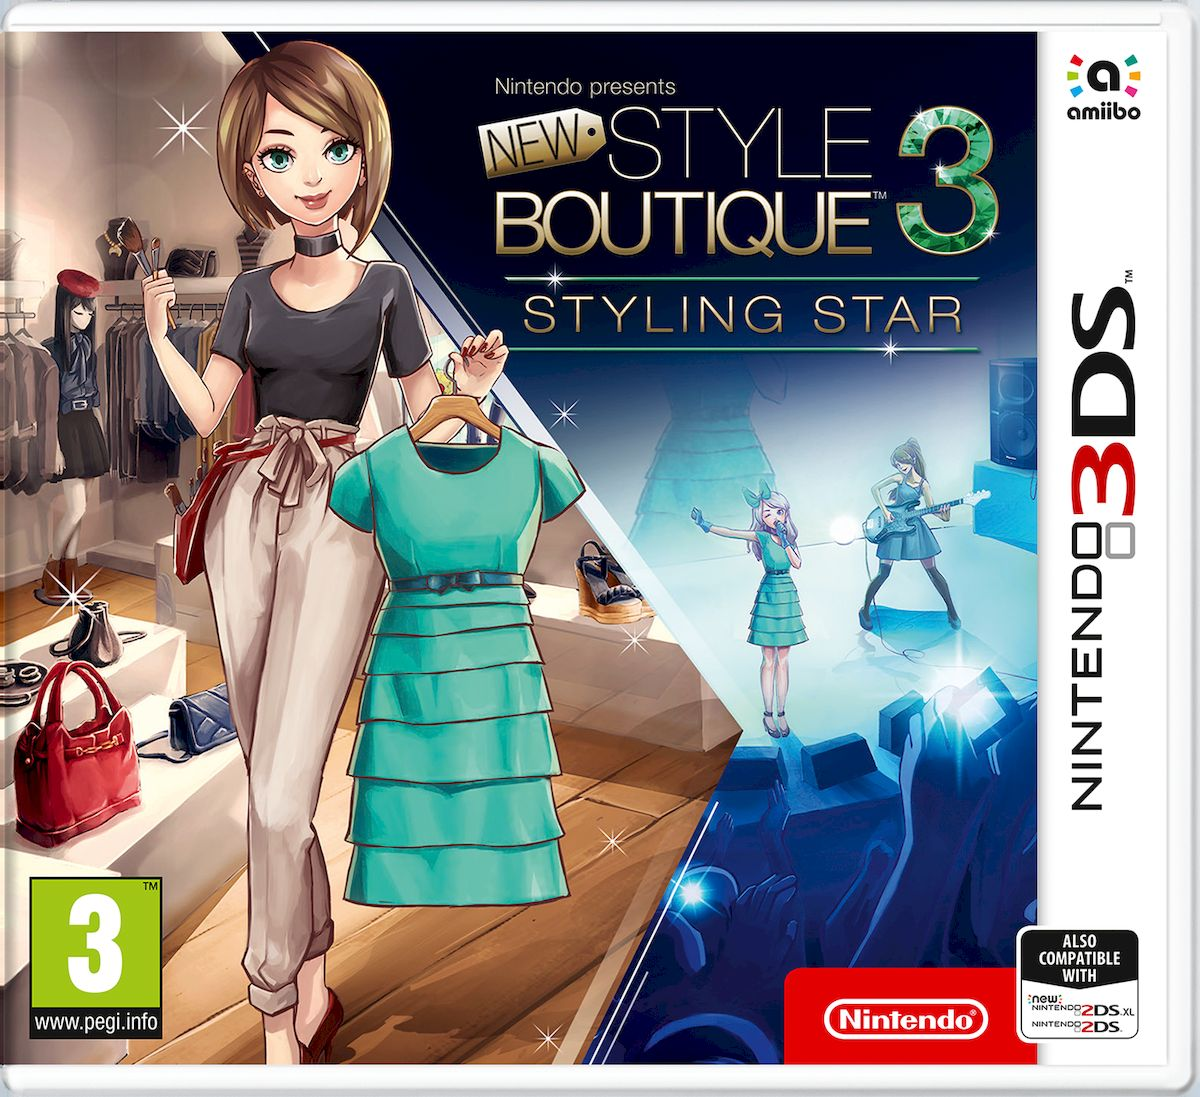 Nintendo Presents: New Style Boutique 3 - Styling Star (3DS)